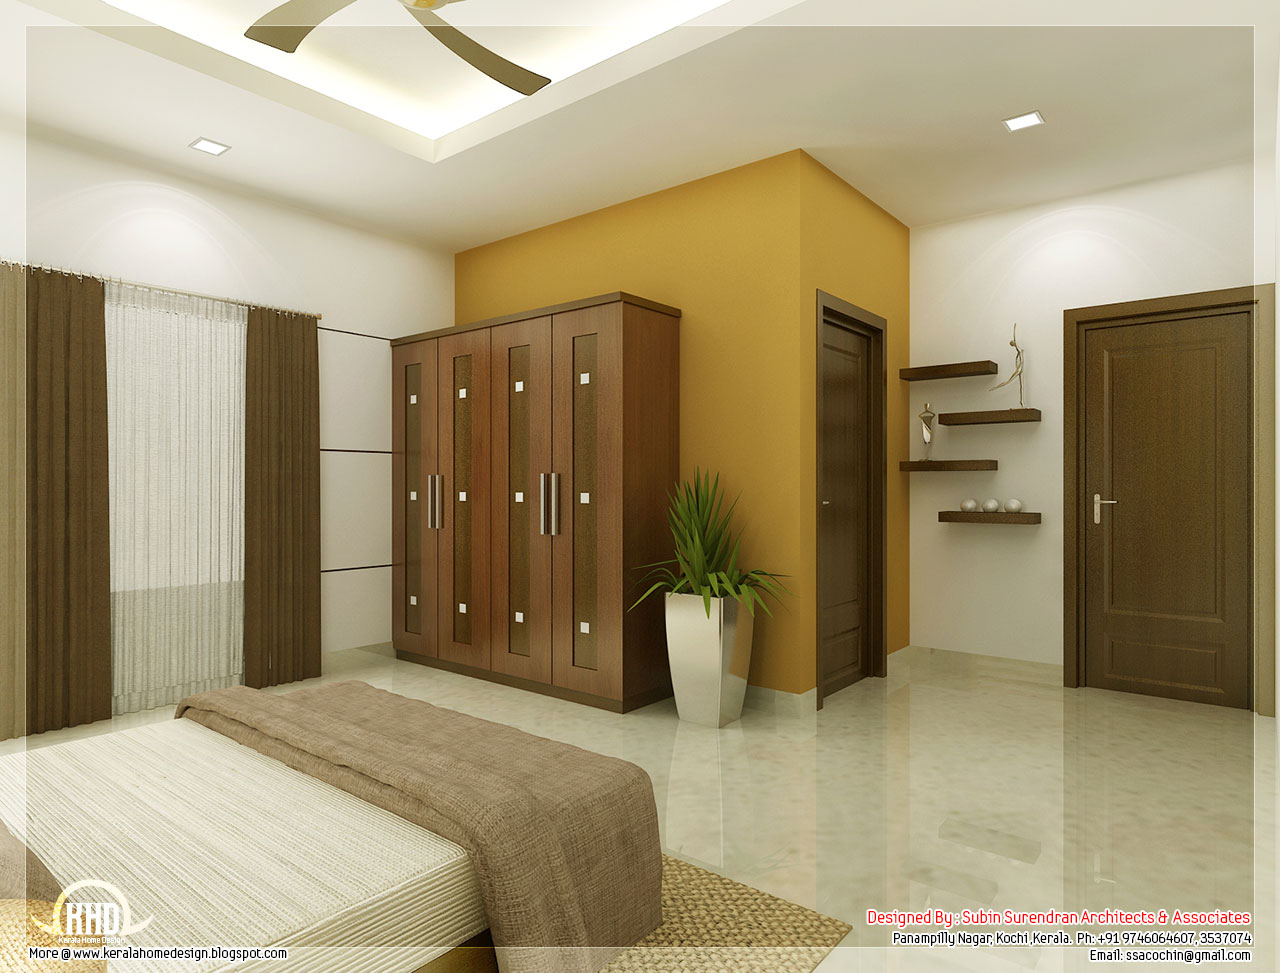 Beautiful bedroom interior designs kerala house design for Simple indian bedroom interior design ideas